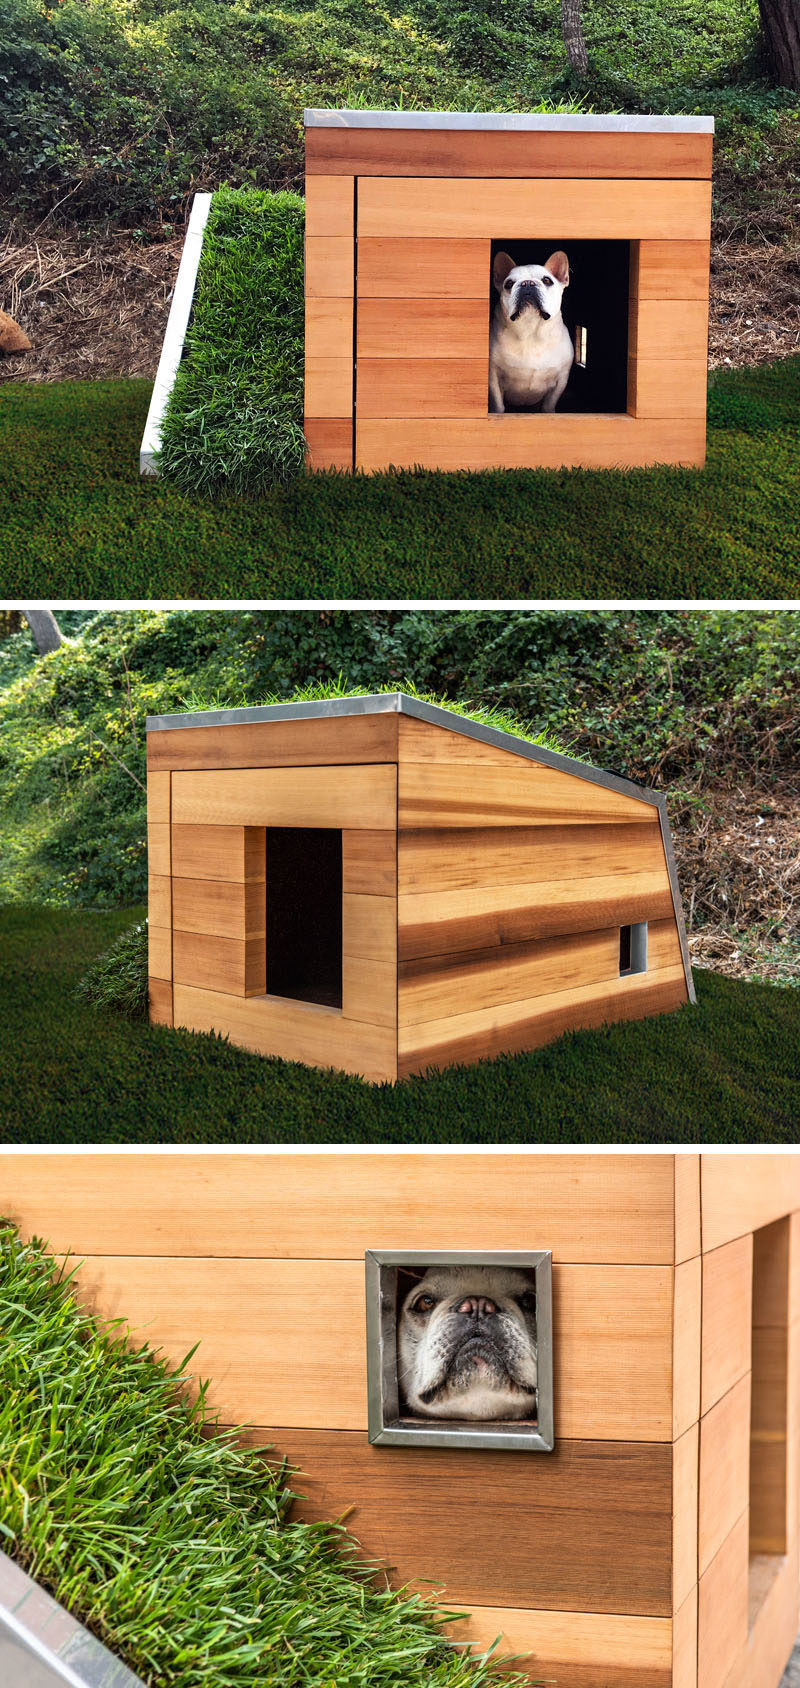 Studio Schicketanz have designed a modern Dog Dream House, that features wood construction, a green roof, storage for toys and snacks, a motion activated faucet, and a solar powered fan. #DogHouse #ModernDogHouse #Architecture #Design